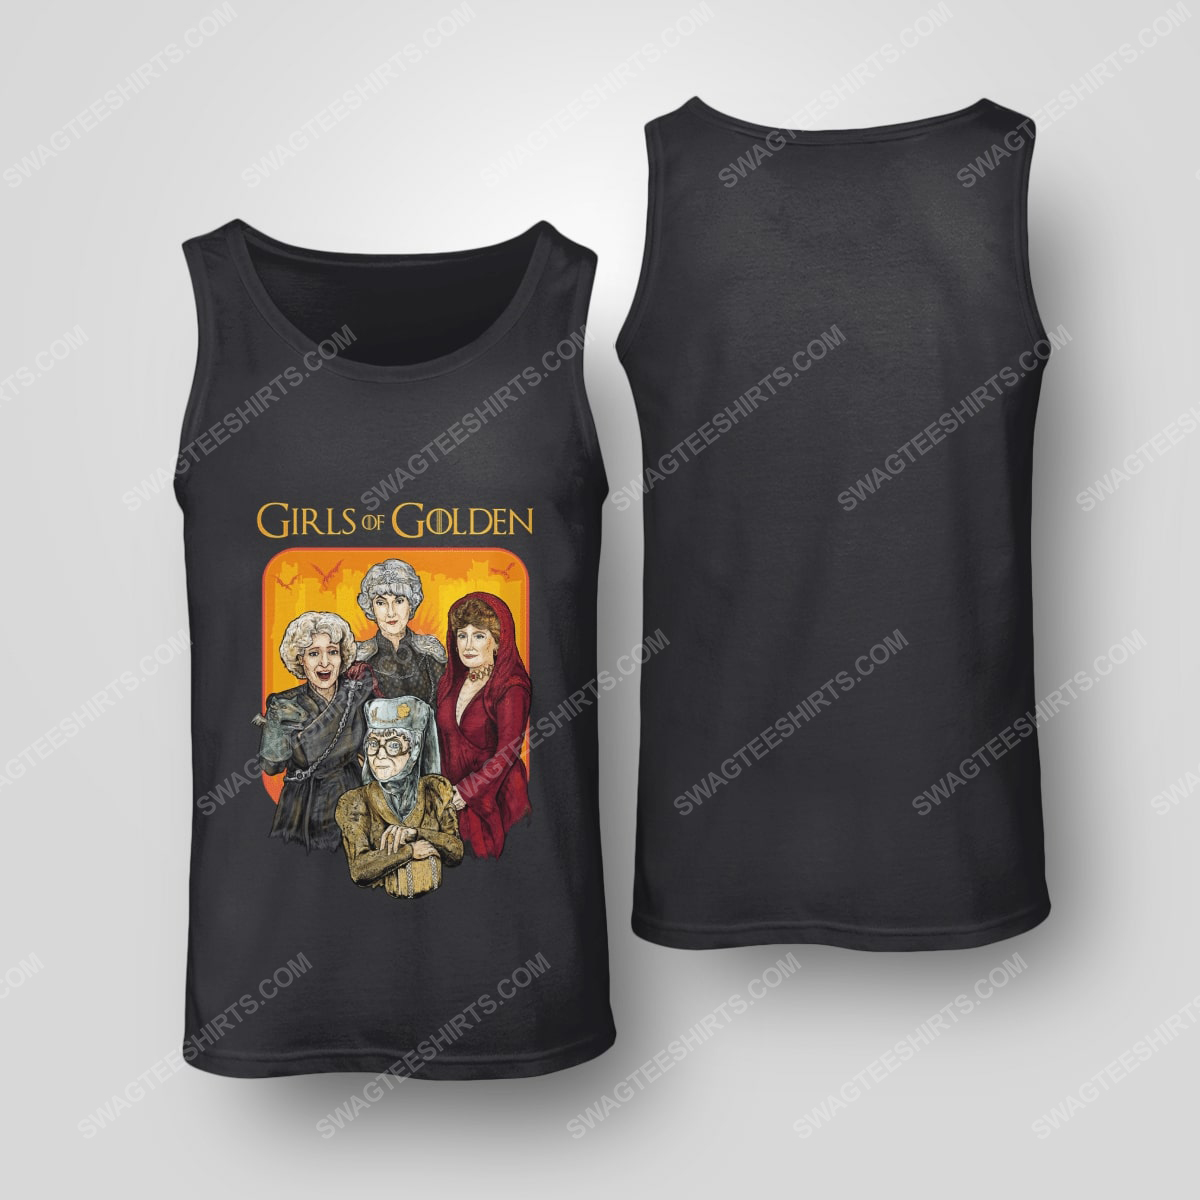 Game of thrones and the golden girls girls of golden tank top(1)